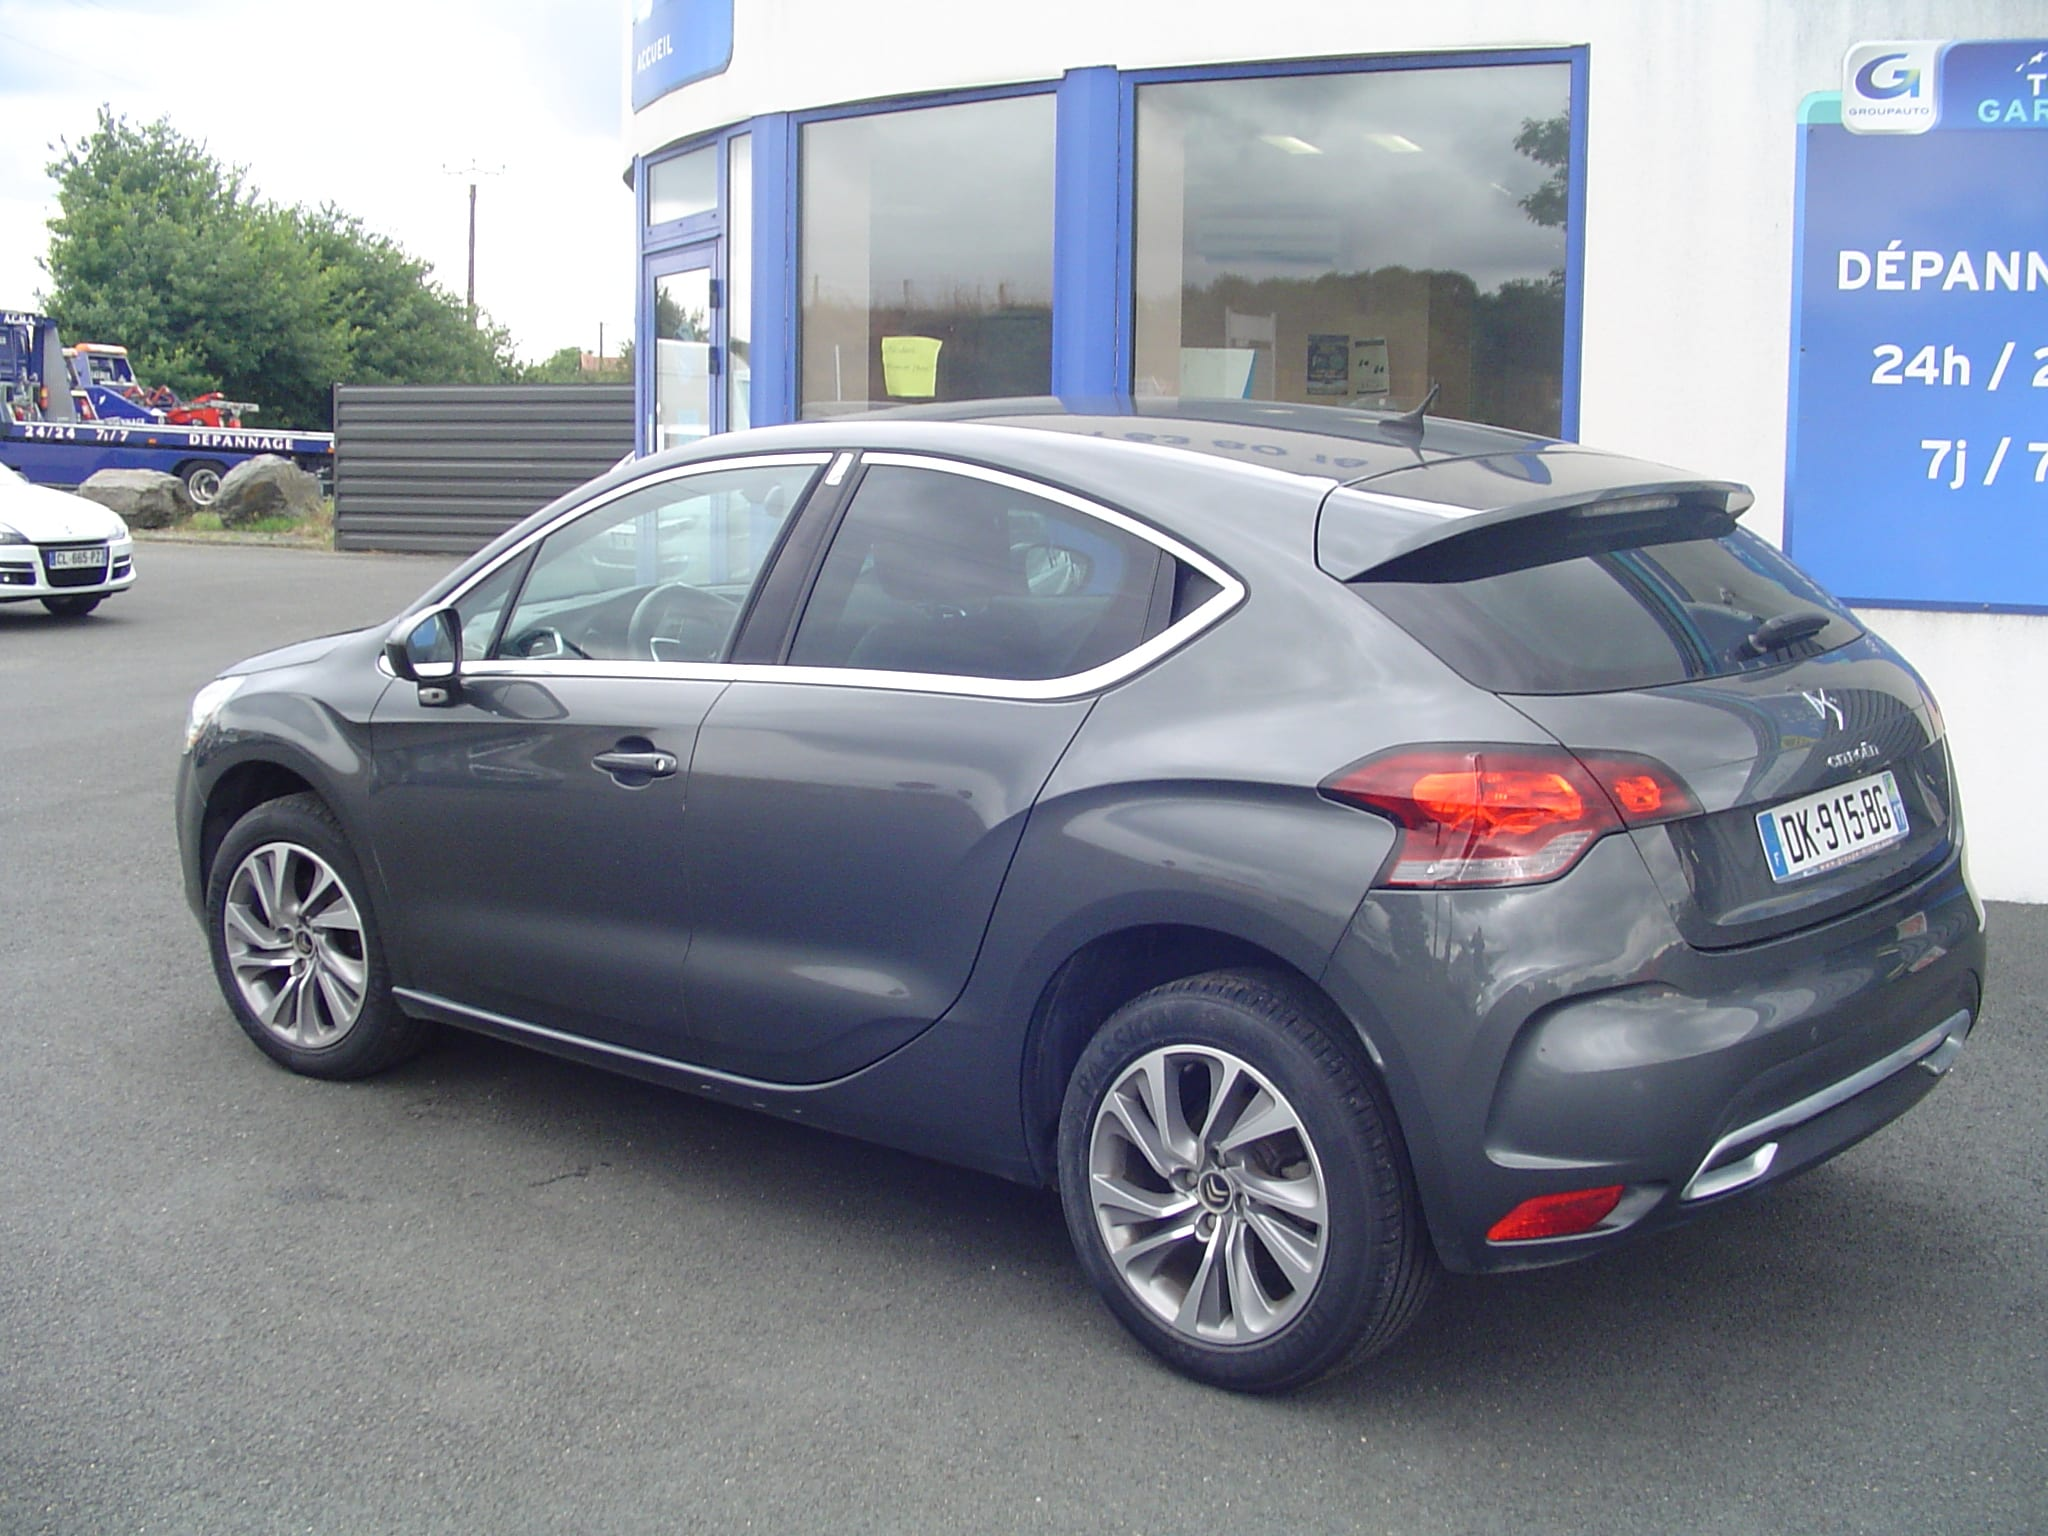 Citroen DS4 - Image 2